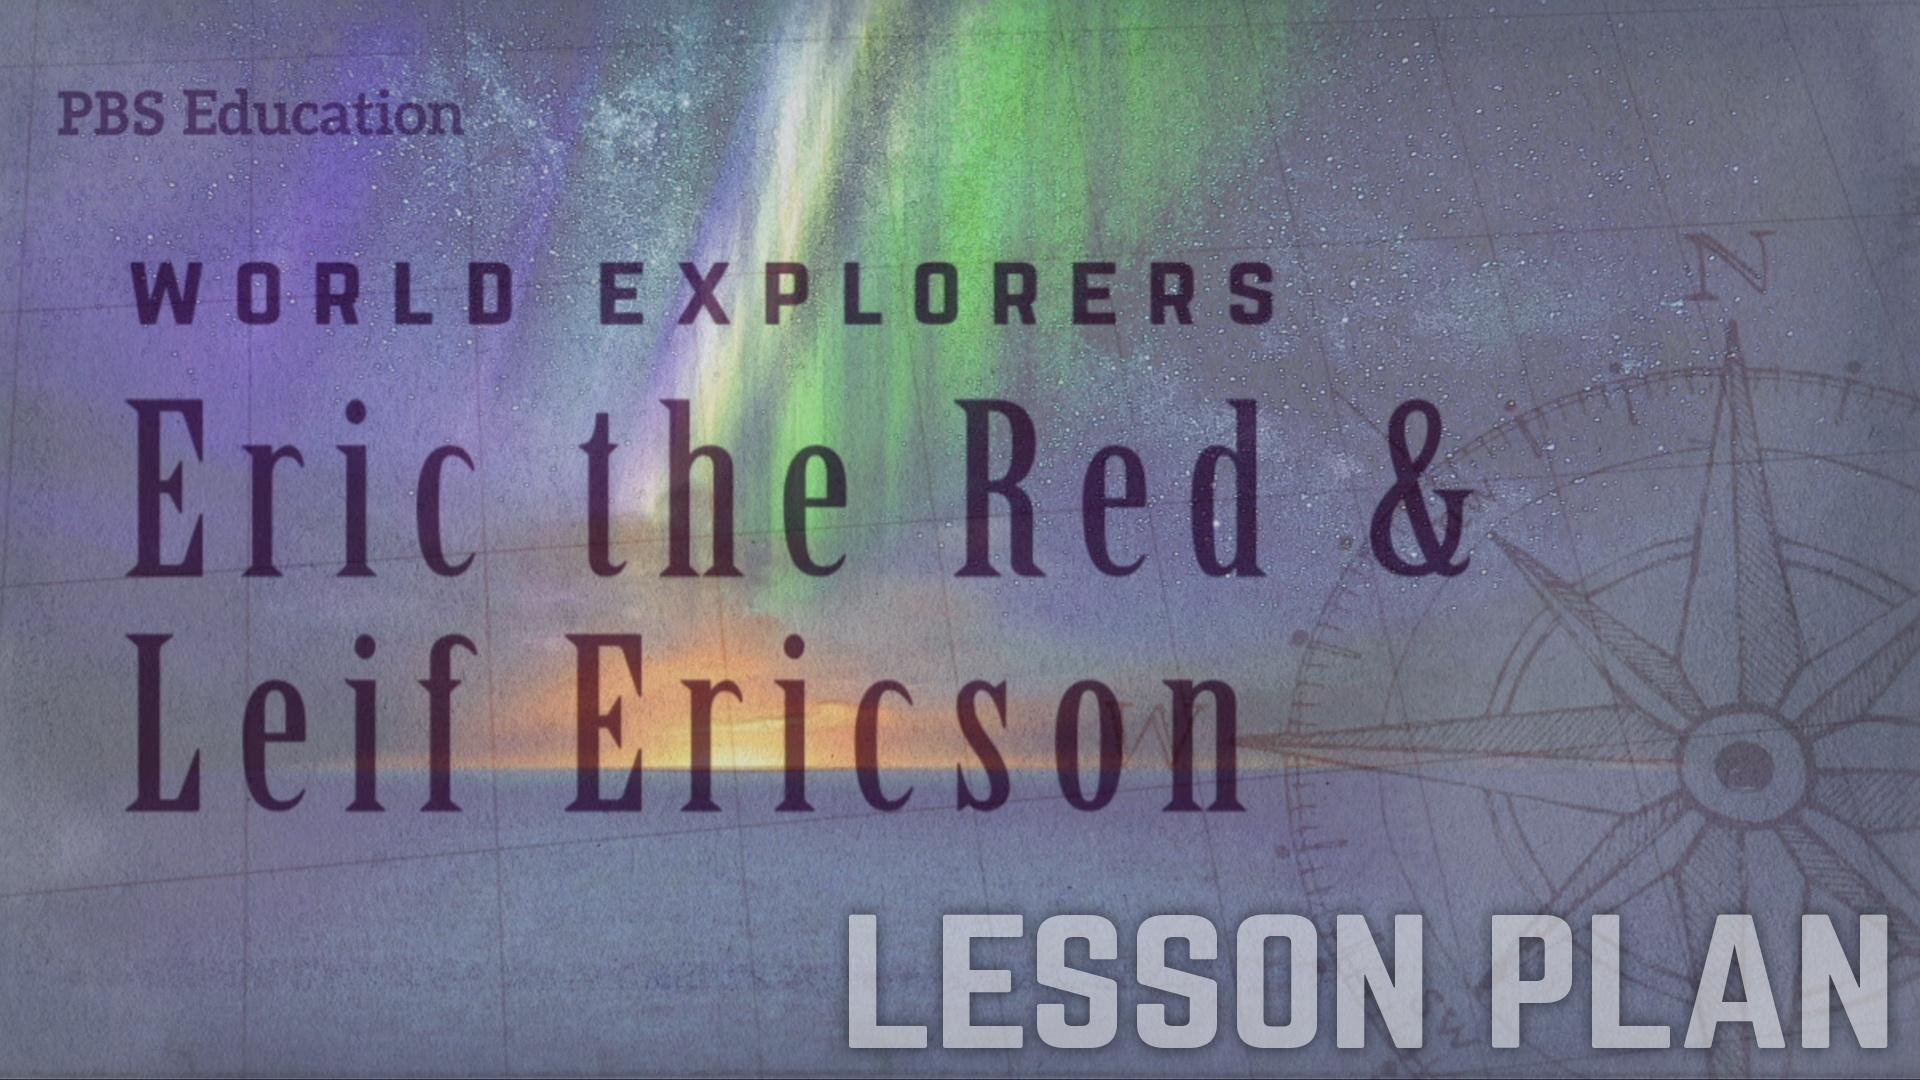 Eric the Red and Leif Ericson | Explorers and Settlers | PBS